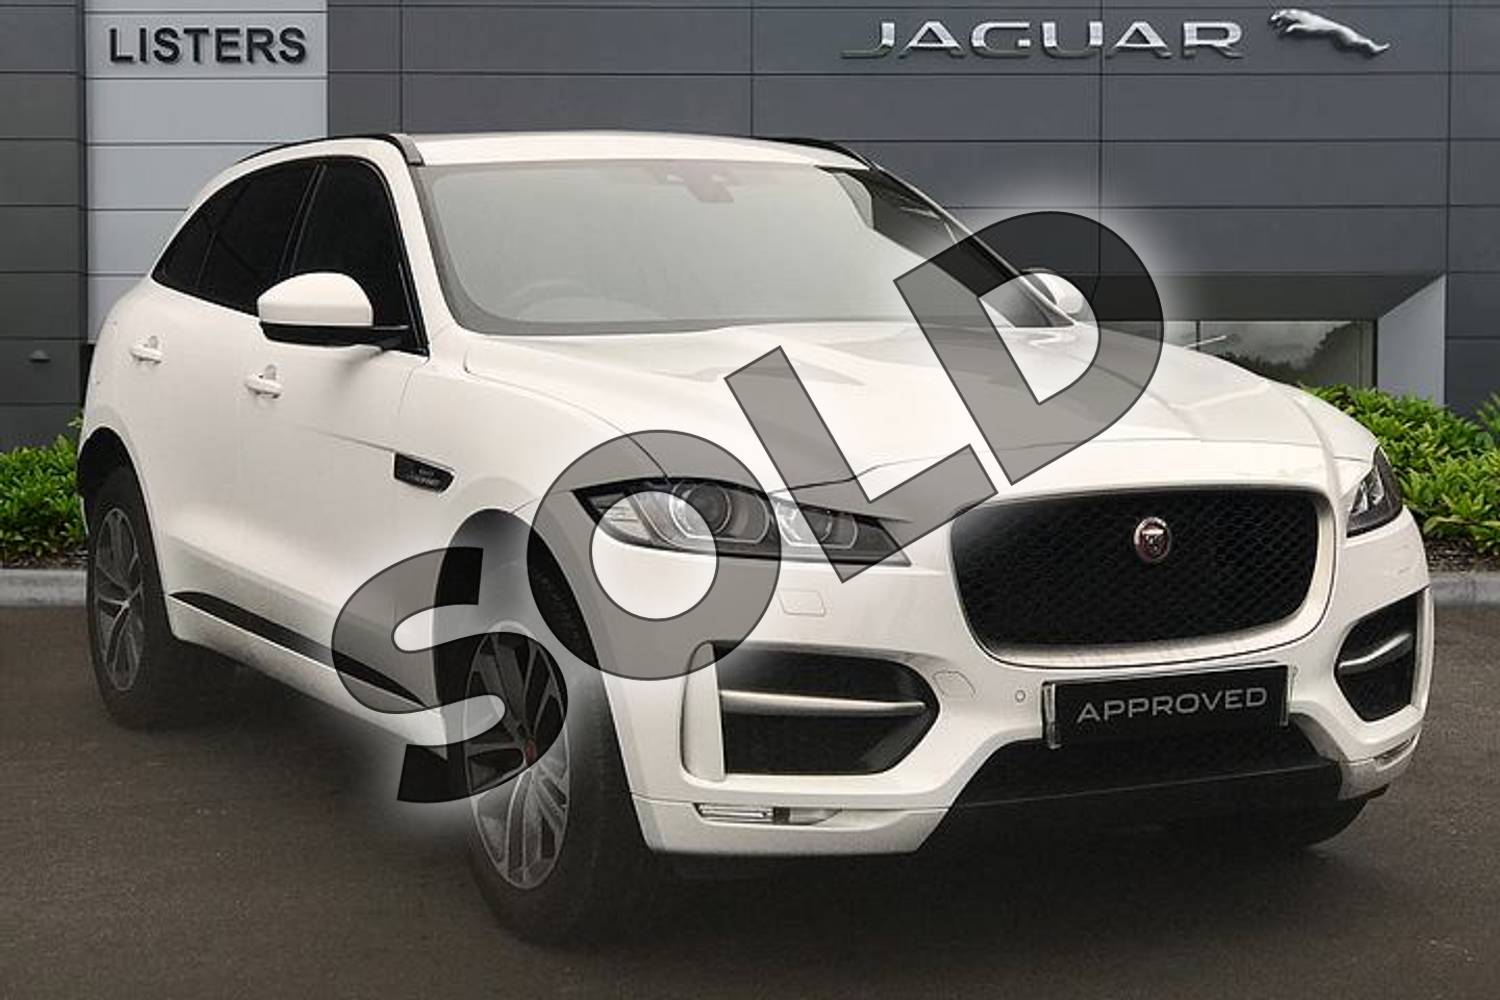 2018 Jaguar F-PACE Diesel Estate 2.0d R-Sport 5dr Auto AWD in Fuji White at Listers Jaguar Solihull